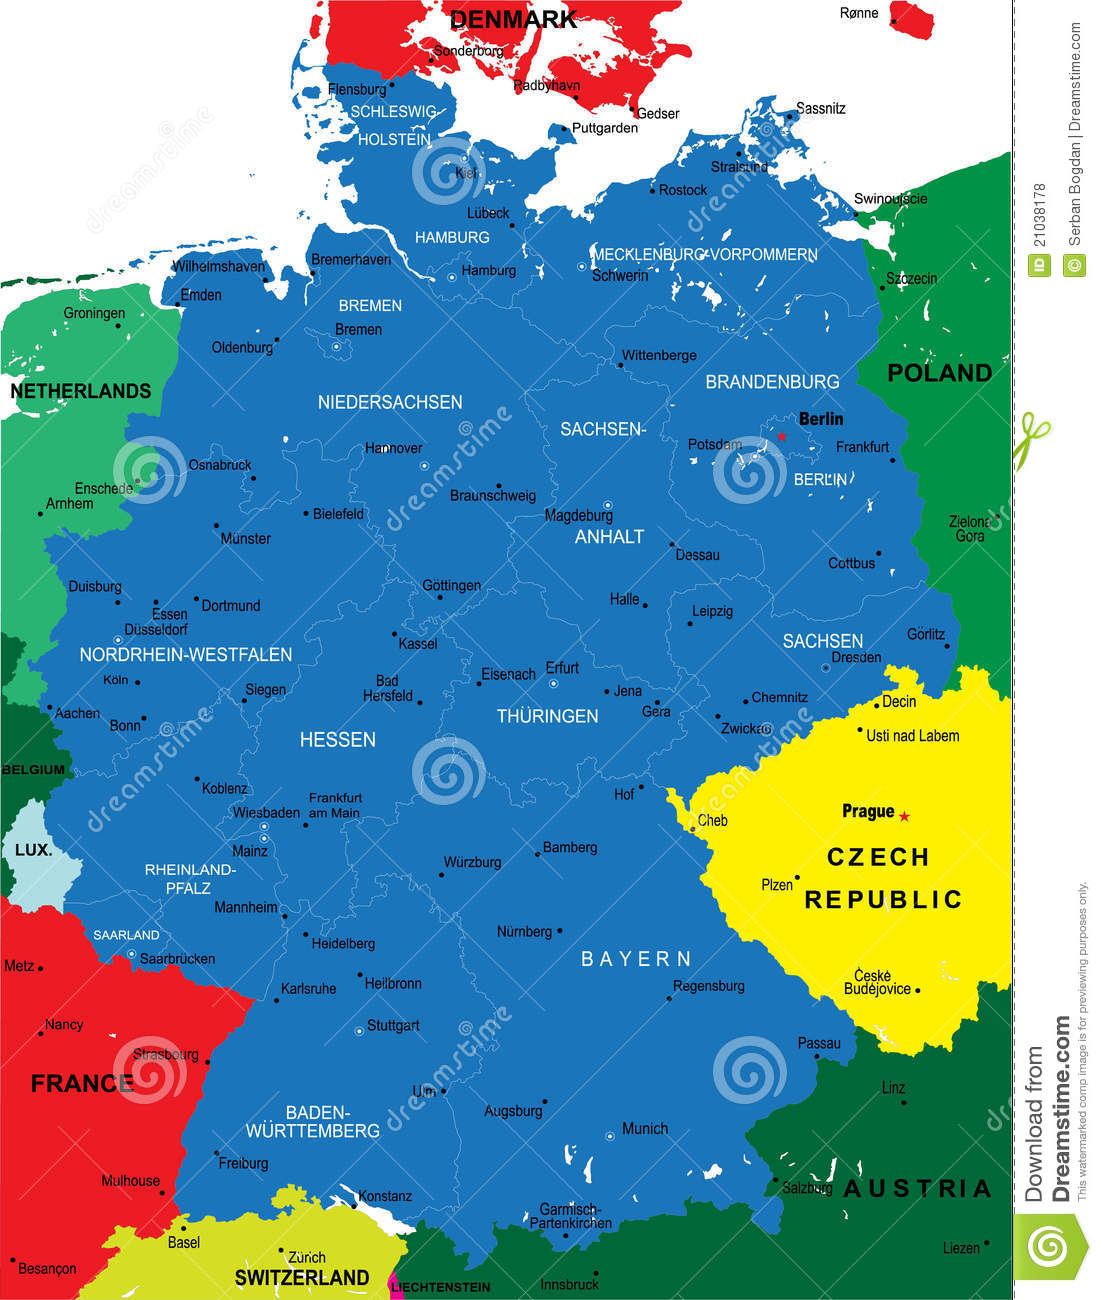 Political map of Germany stock vector. Illustration of illustration ...